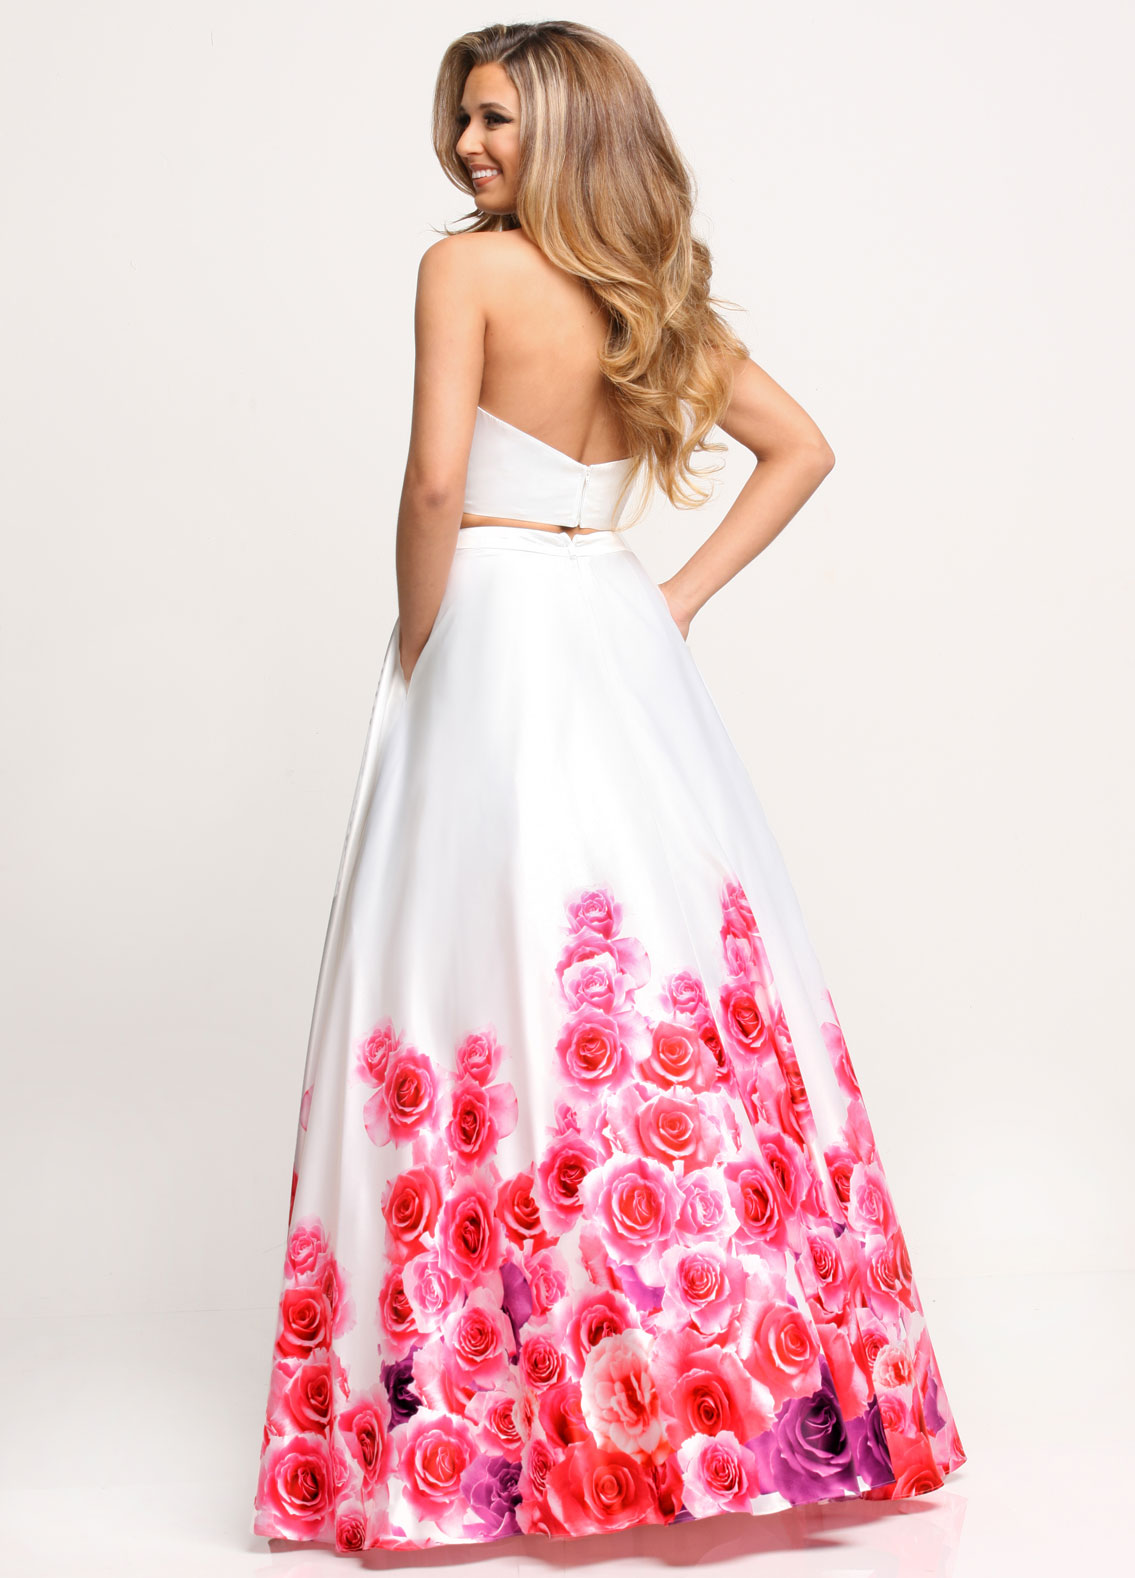 Image showing back view of style #71630